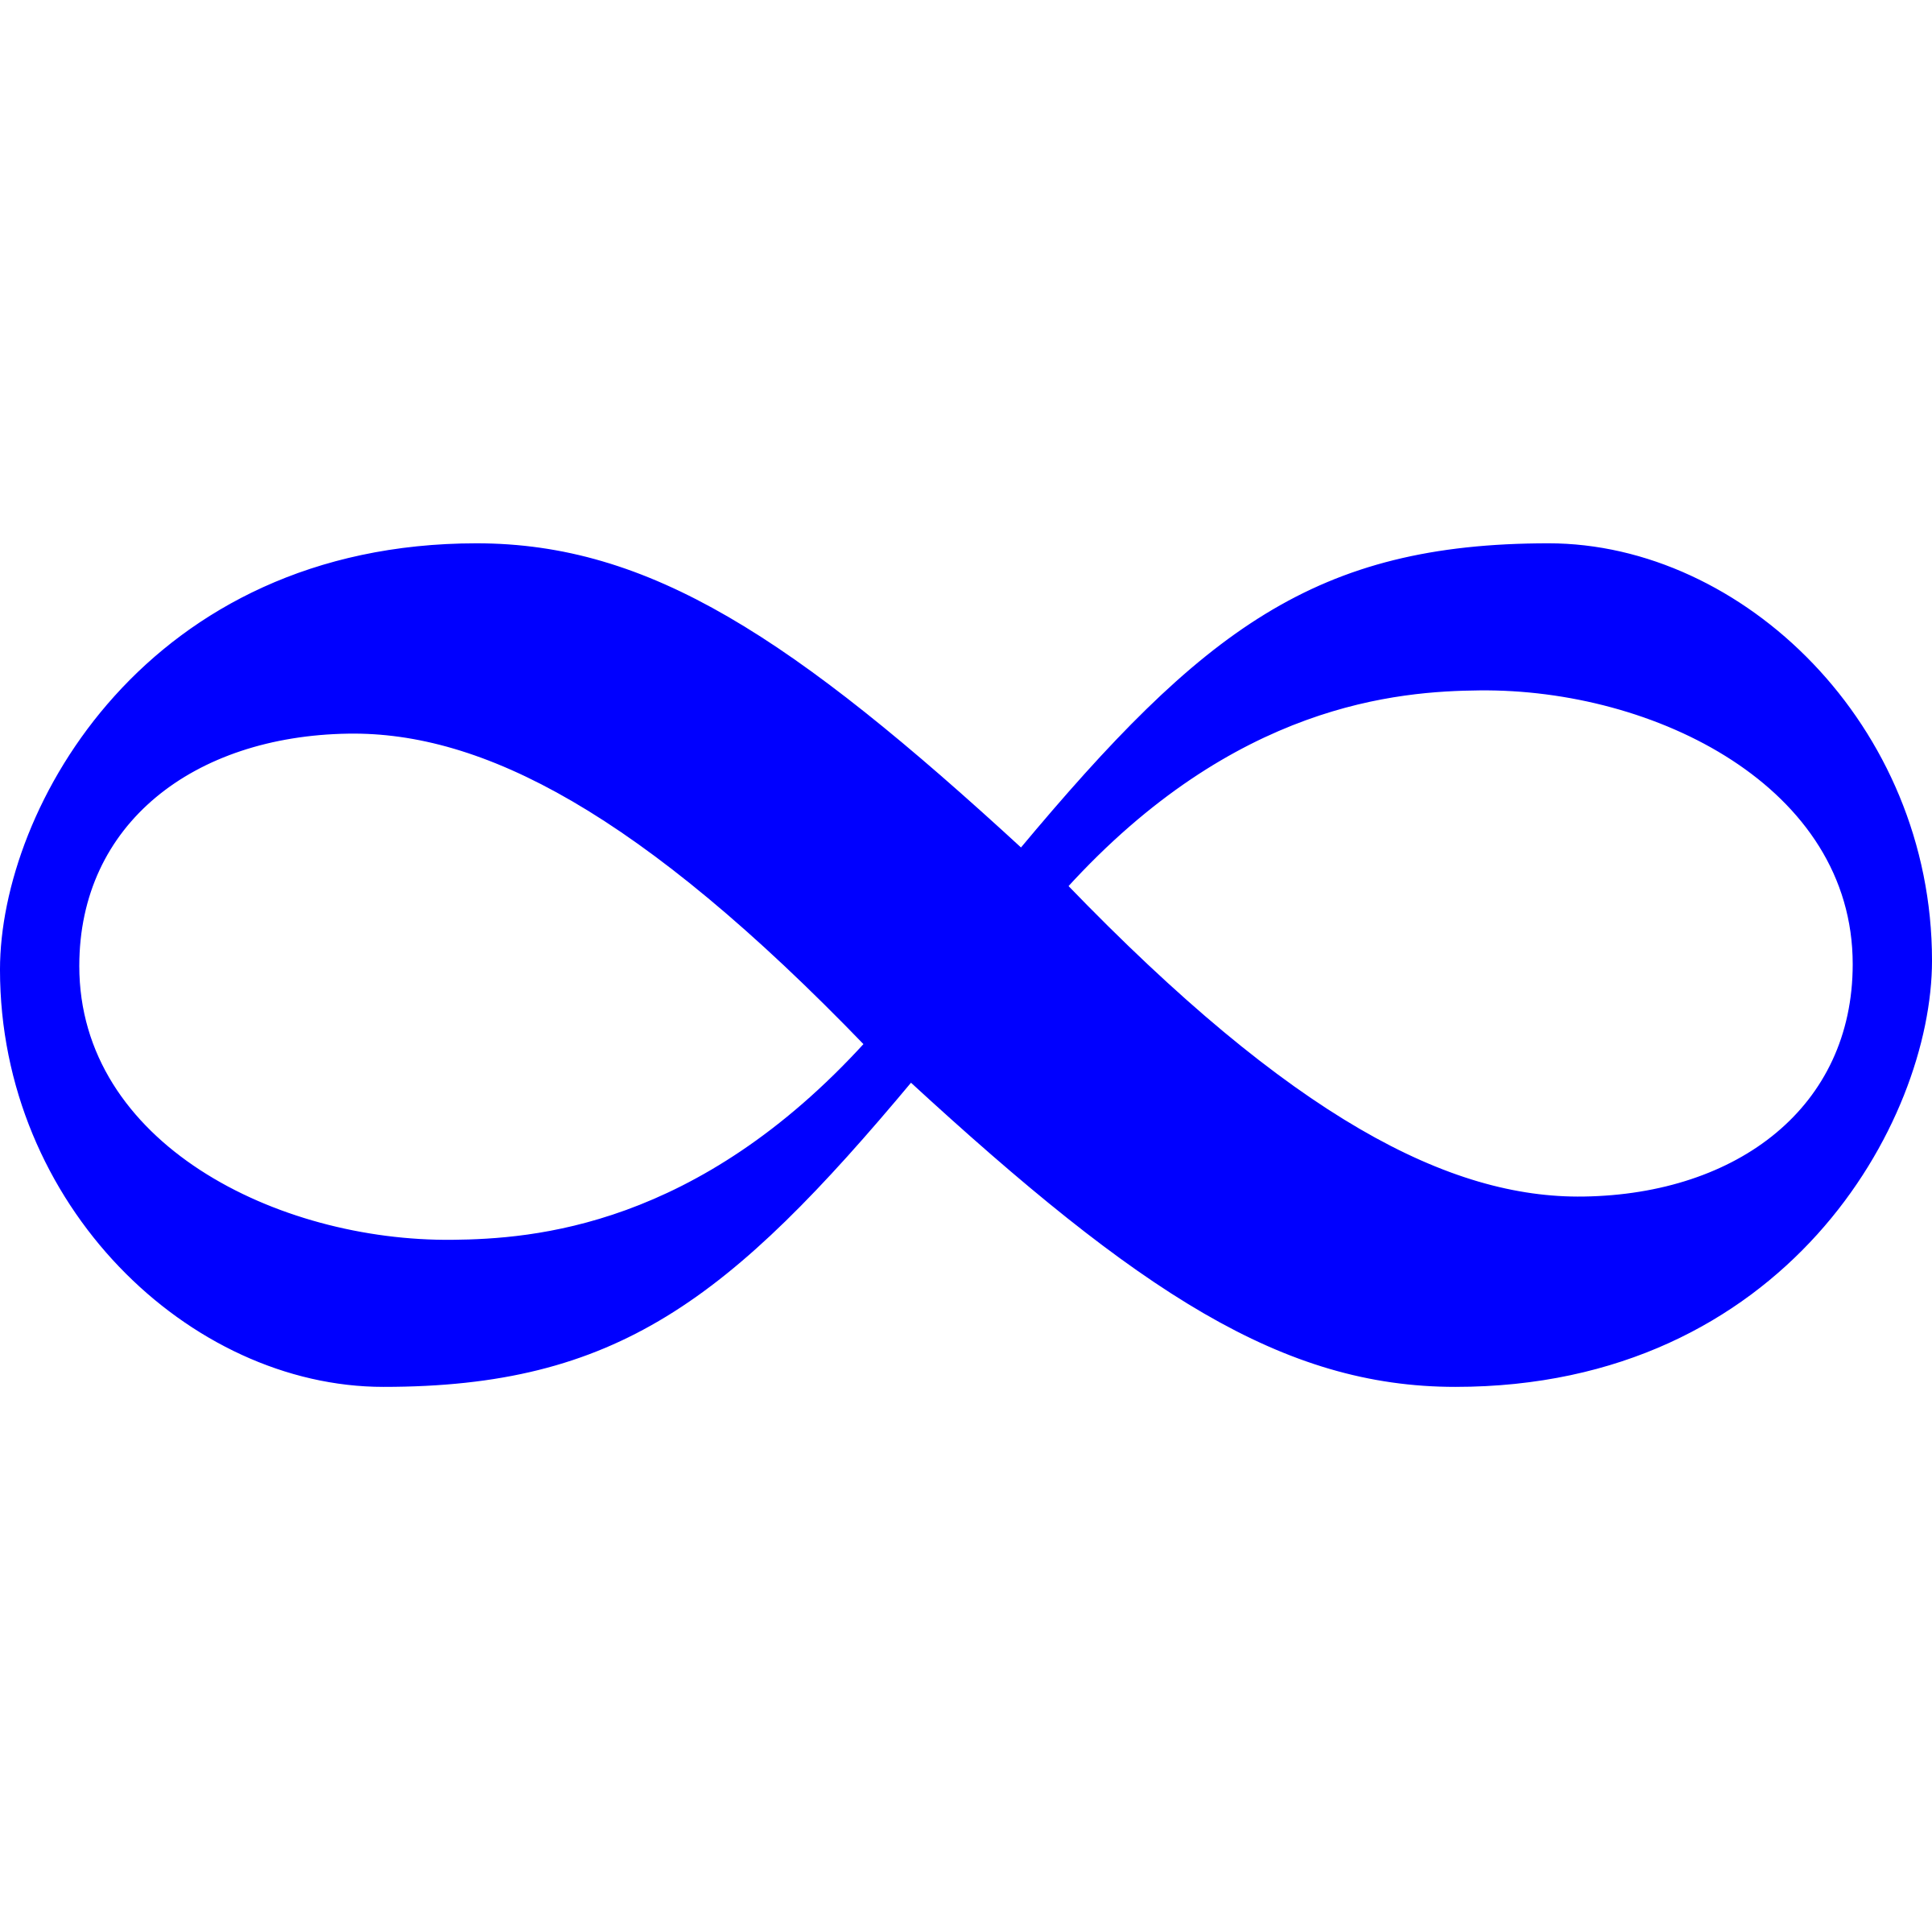 Infinity cross clipart svg freeuse Infinity symbol PNG images free download svg freeuse